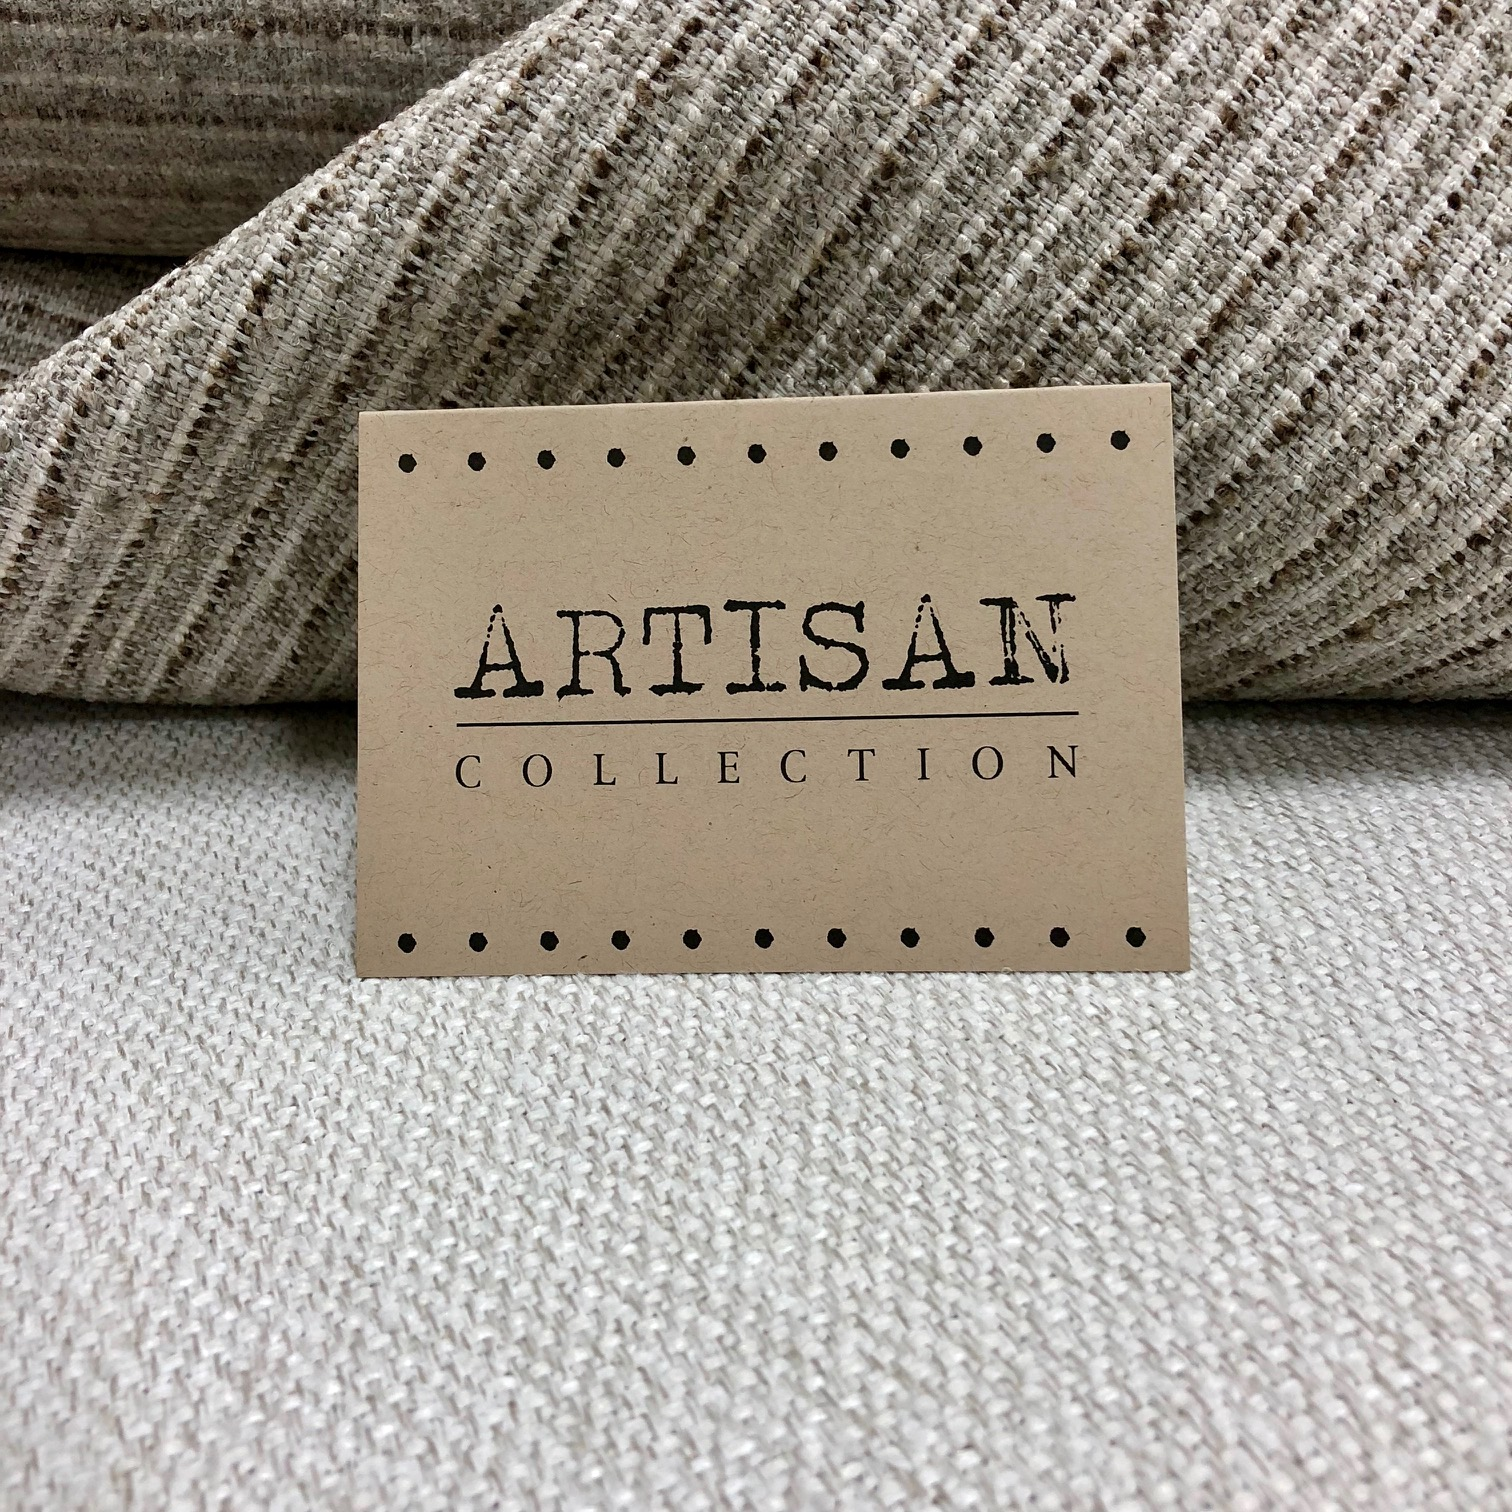 artisan collection.jpg